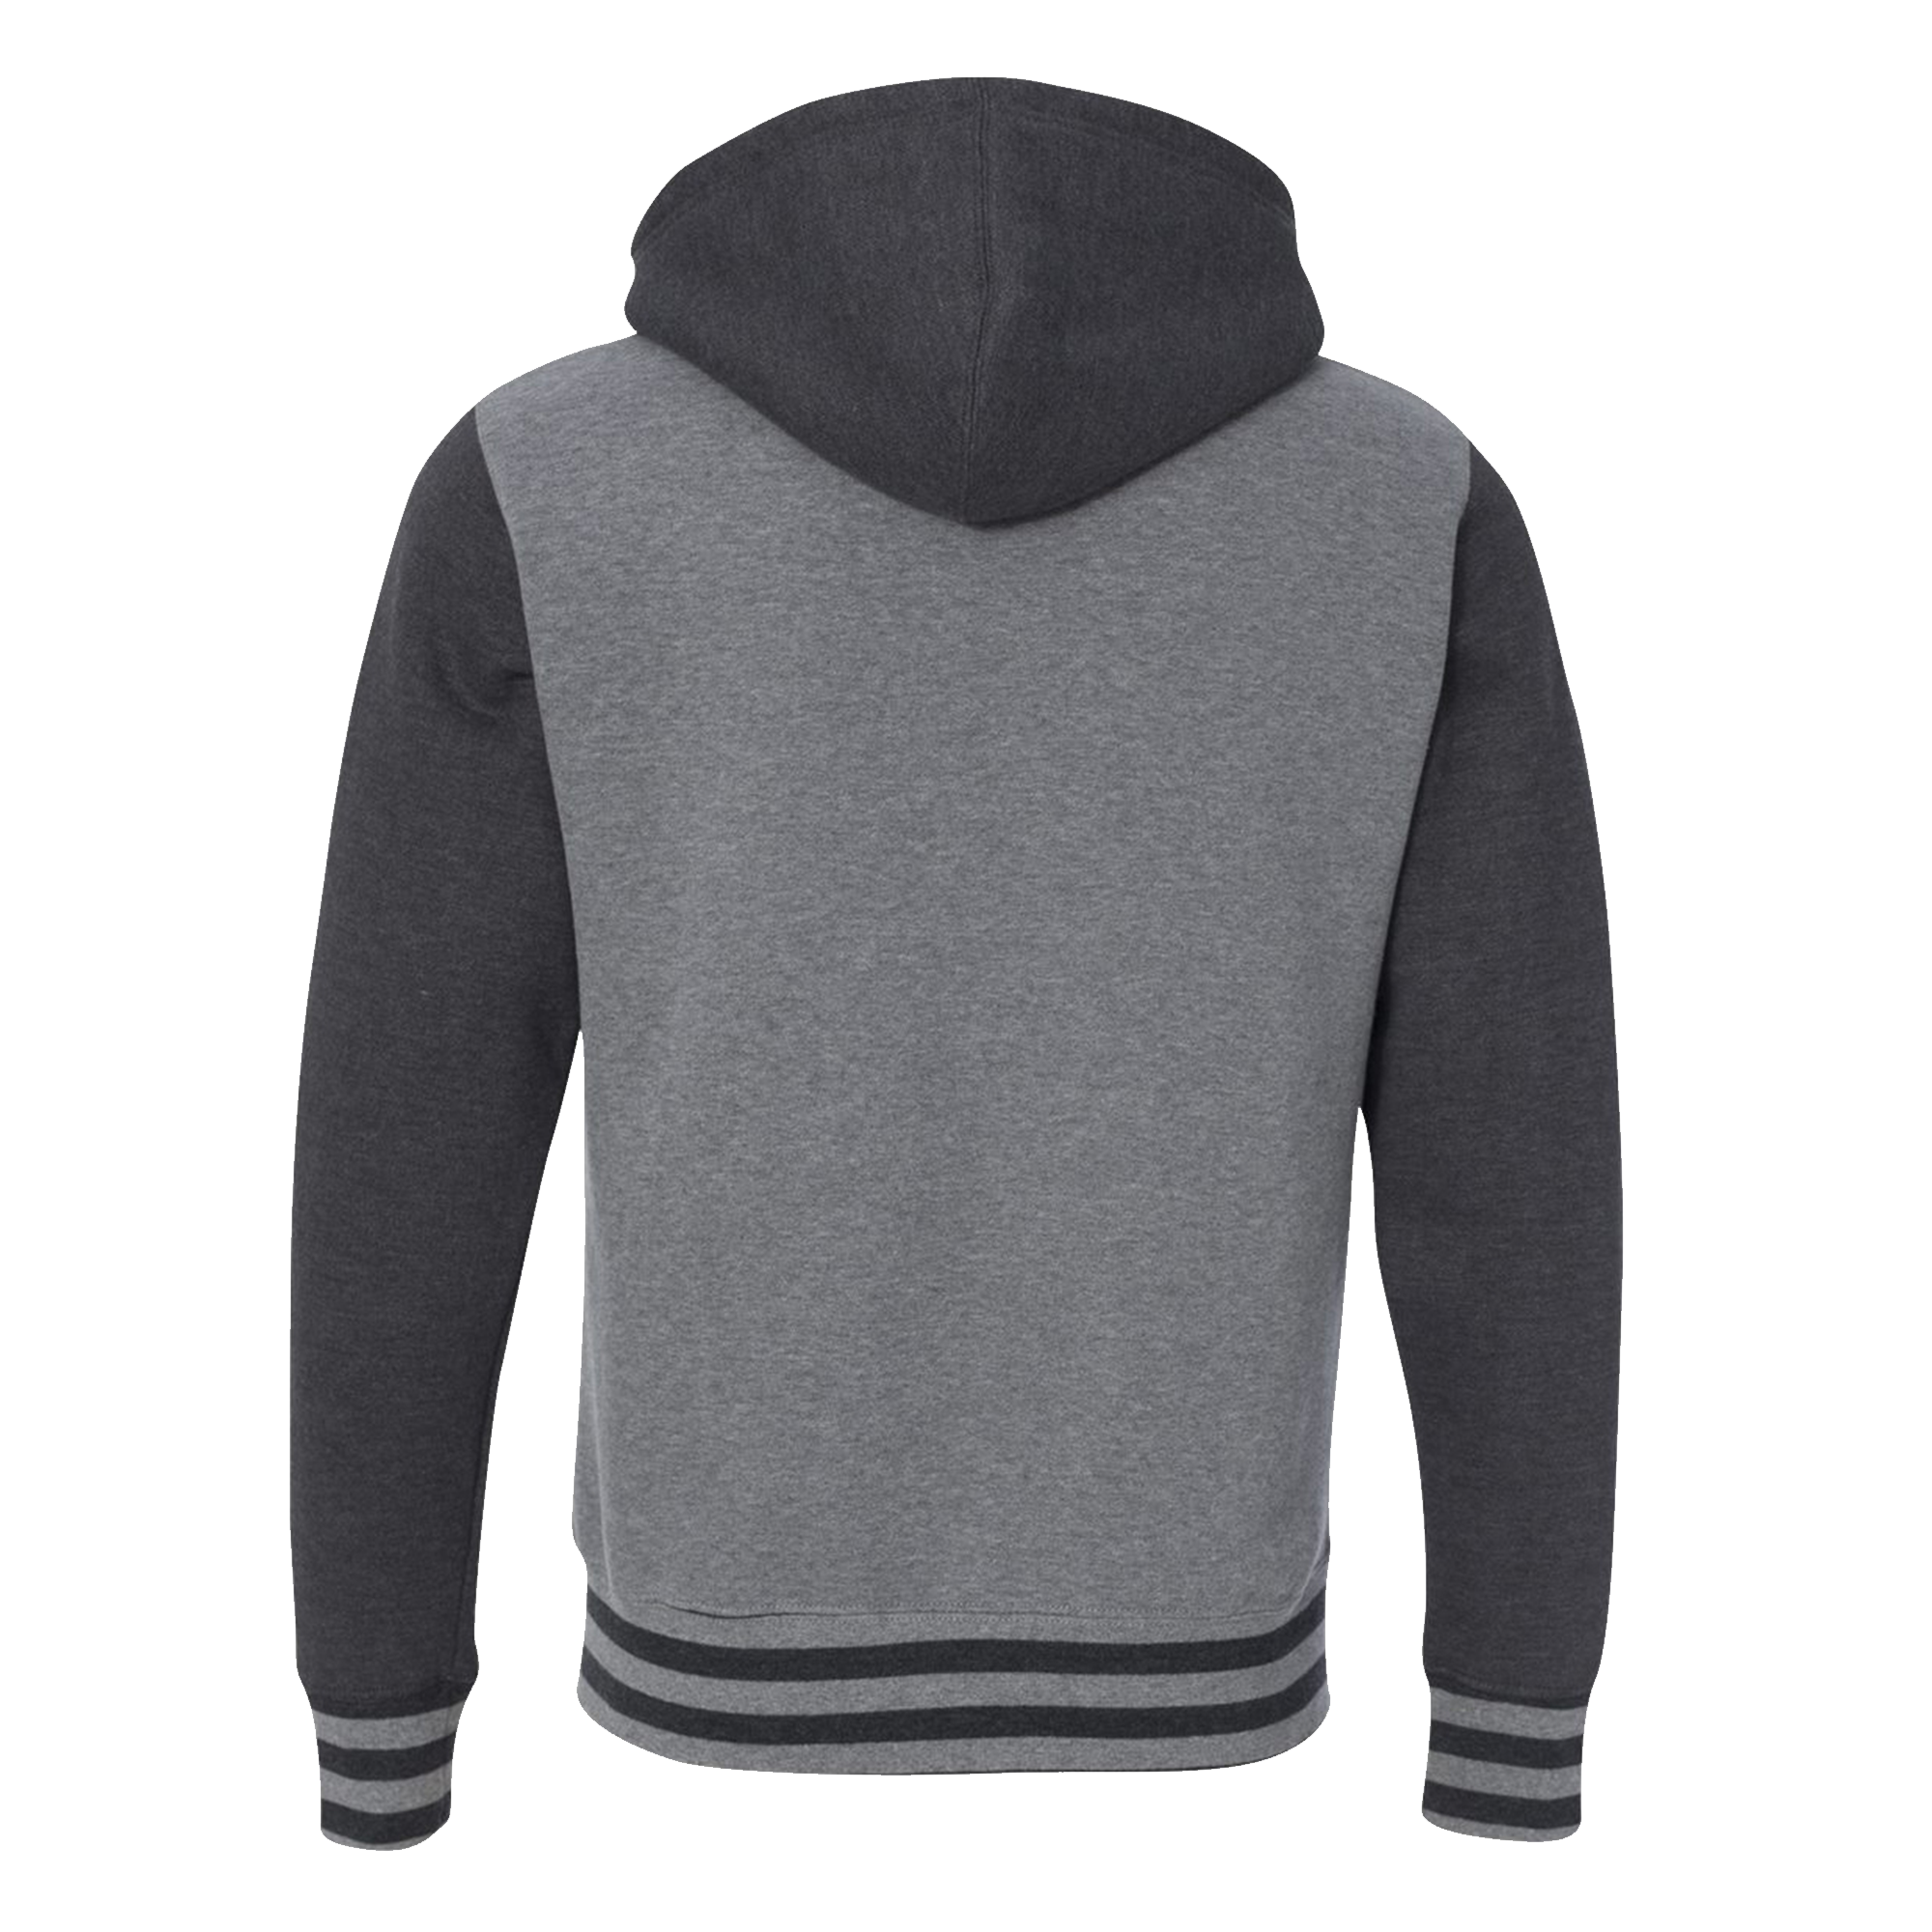 EQNX Varsity Full-Zip Hooded Sweatshirt